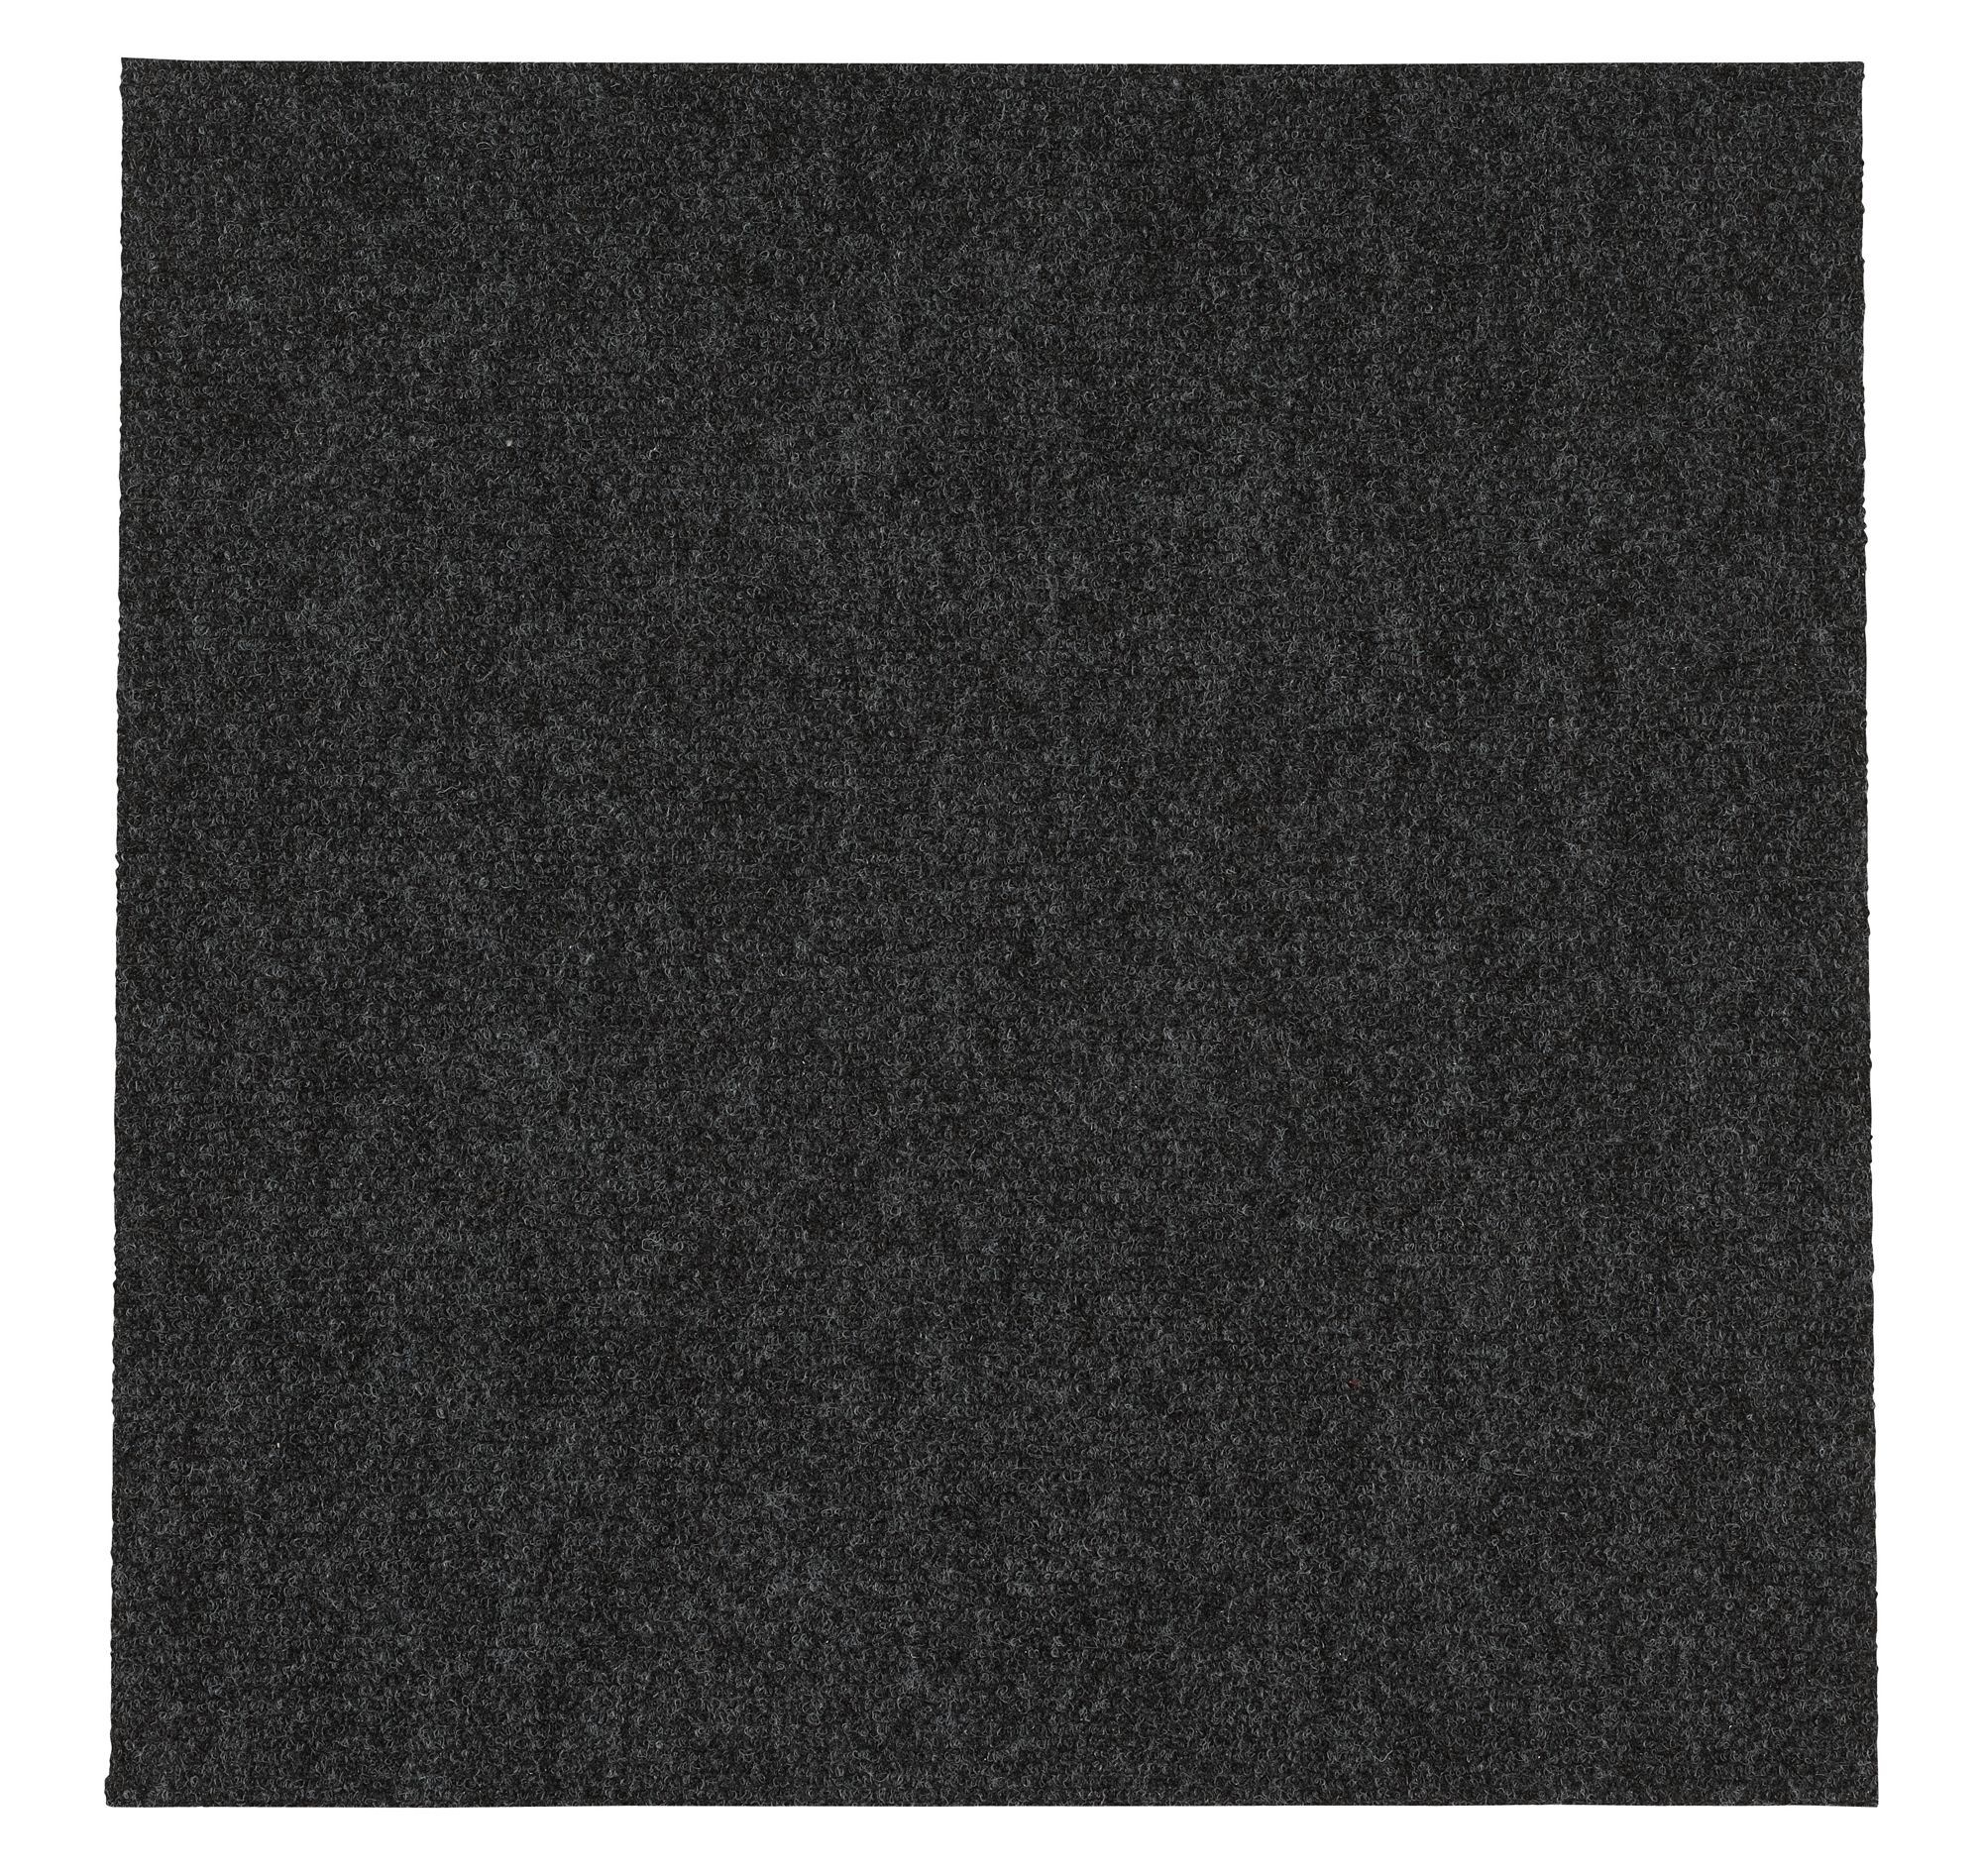 B Amp Q Grey Carpet Tile Pack Of 10 Departments Diy At B Amp Q